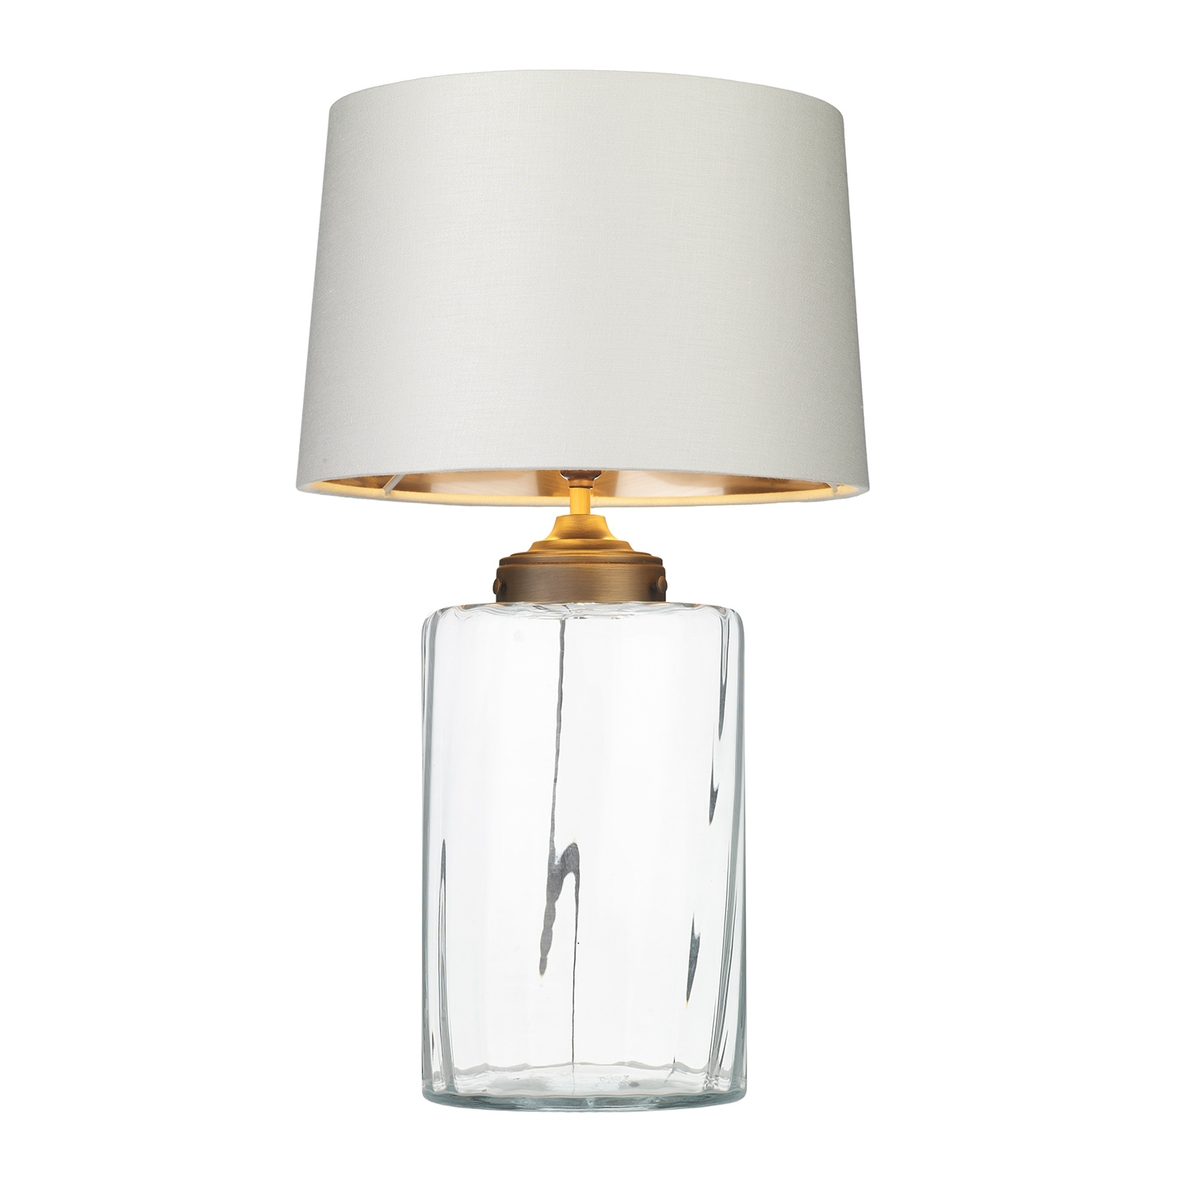 Kew Clear Glass Table Lamp